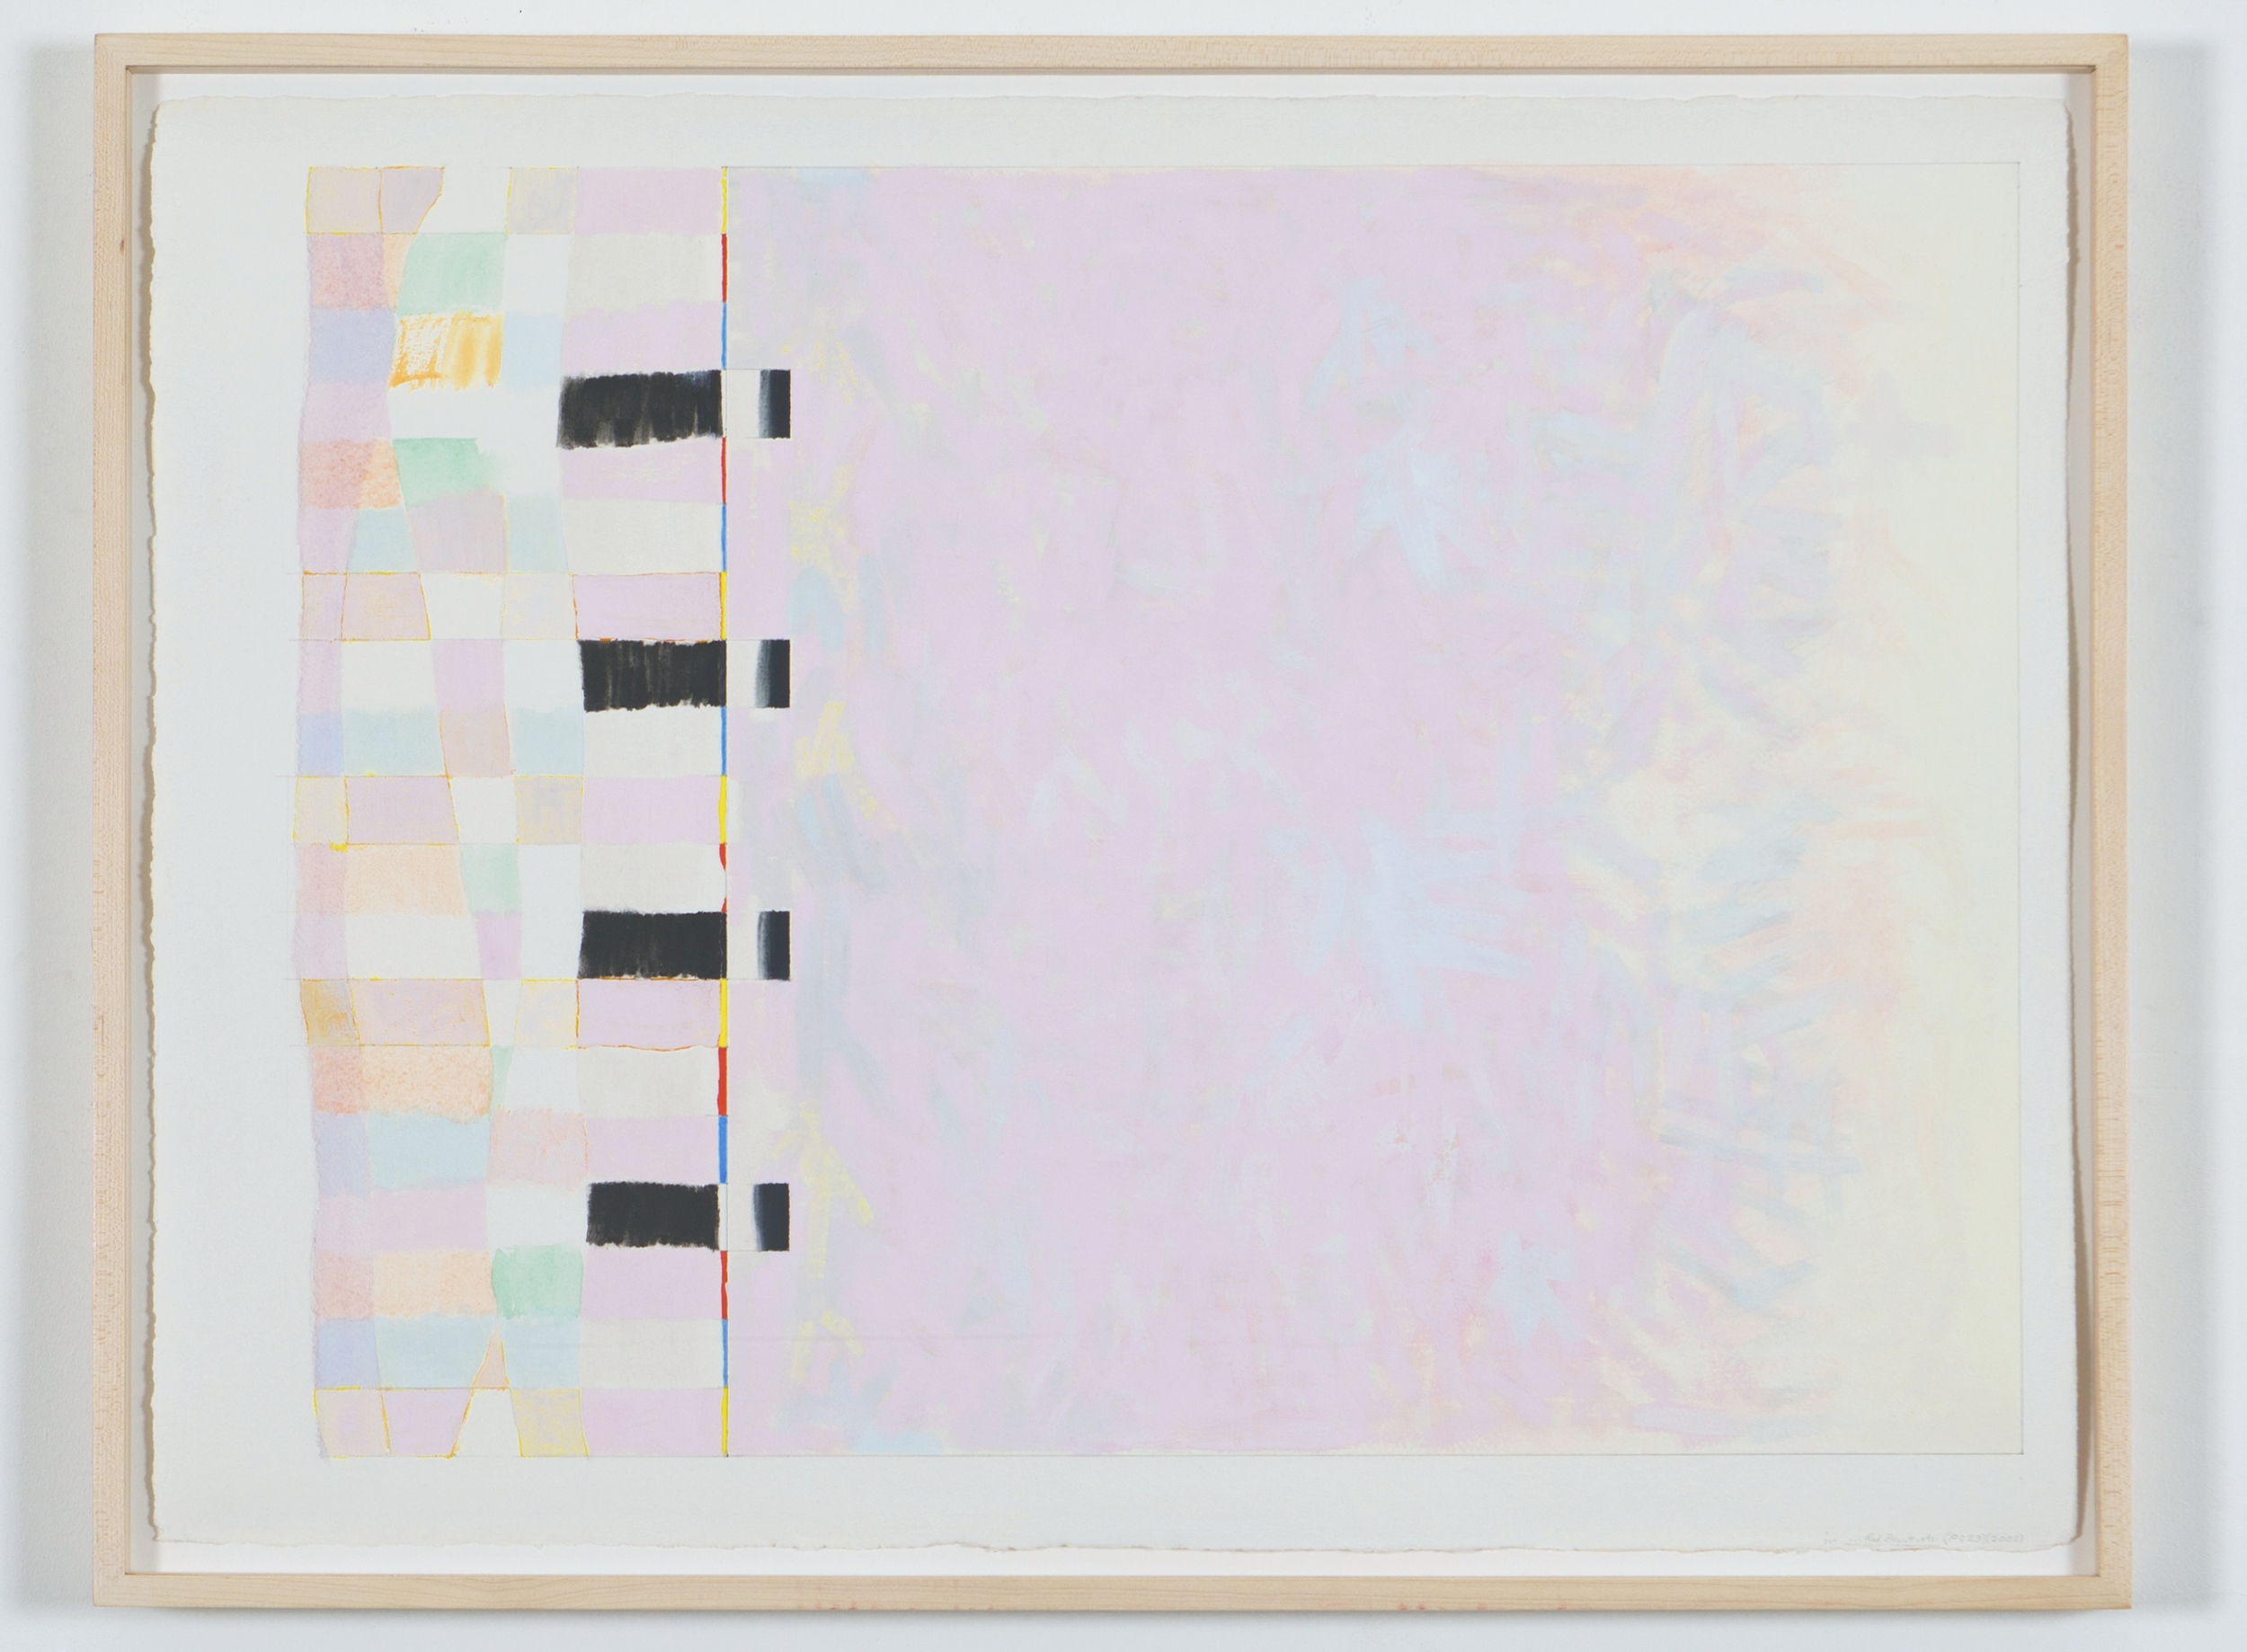 """Untitled... Red Desert etc.II (PG23), 2002, gouache on paper, 20 3/16""""x26 5/8"""" (image), 22 5/8""""x30"""" (paper)"""